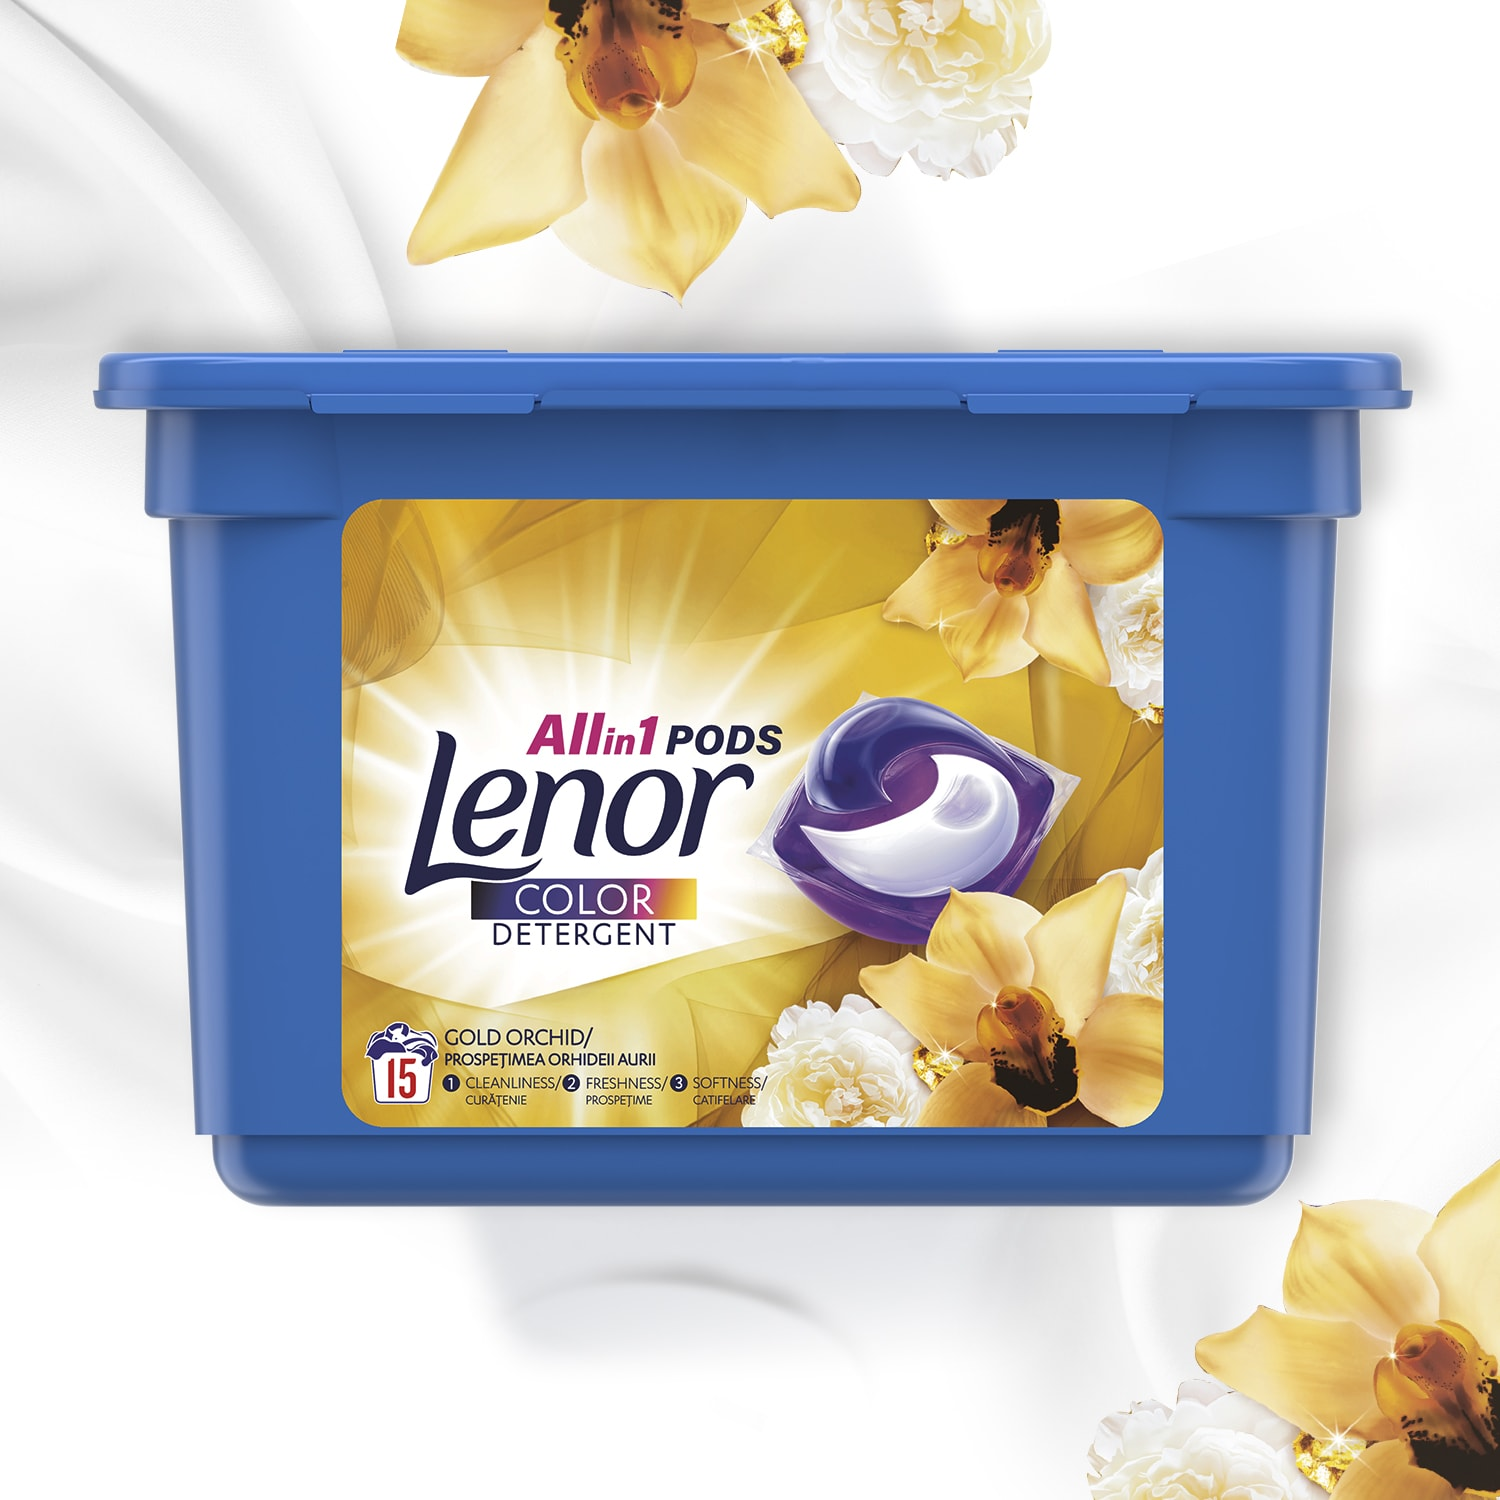 Detergent Lenor Allin1 PODS Gold Orchid